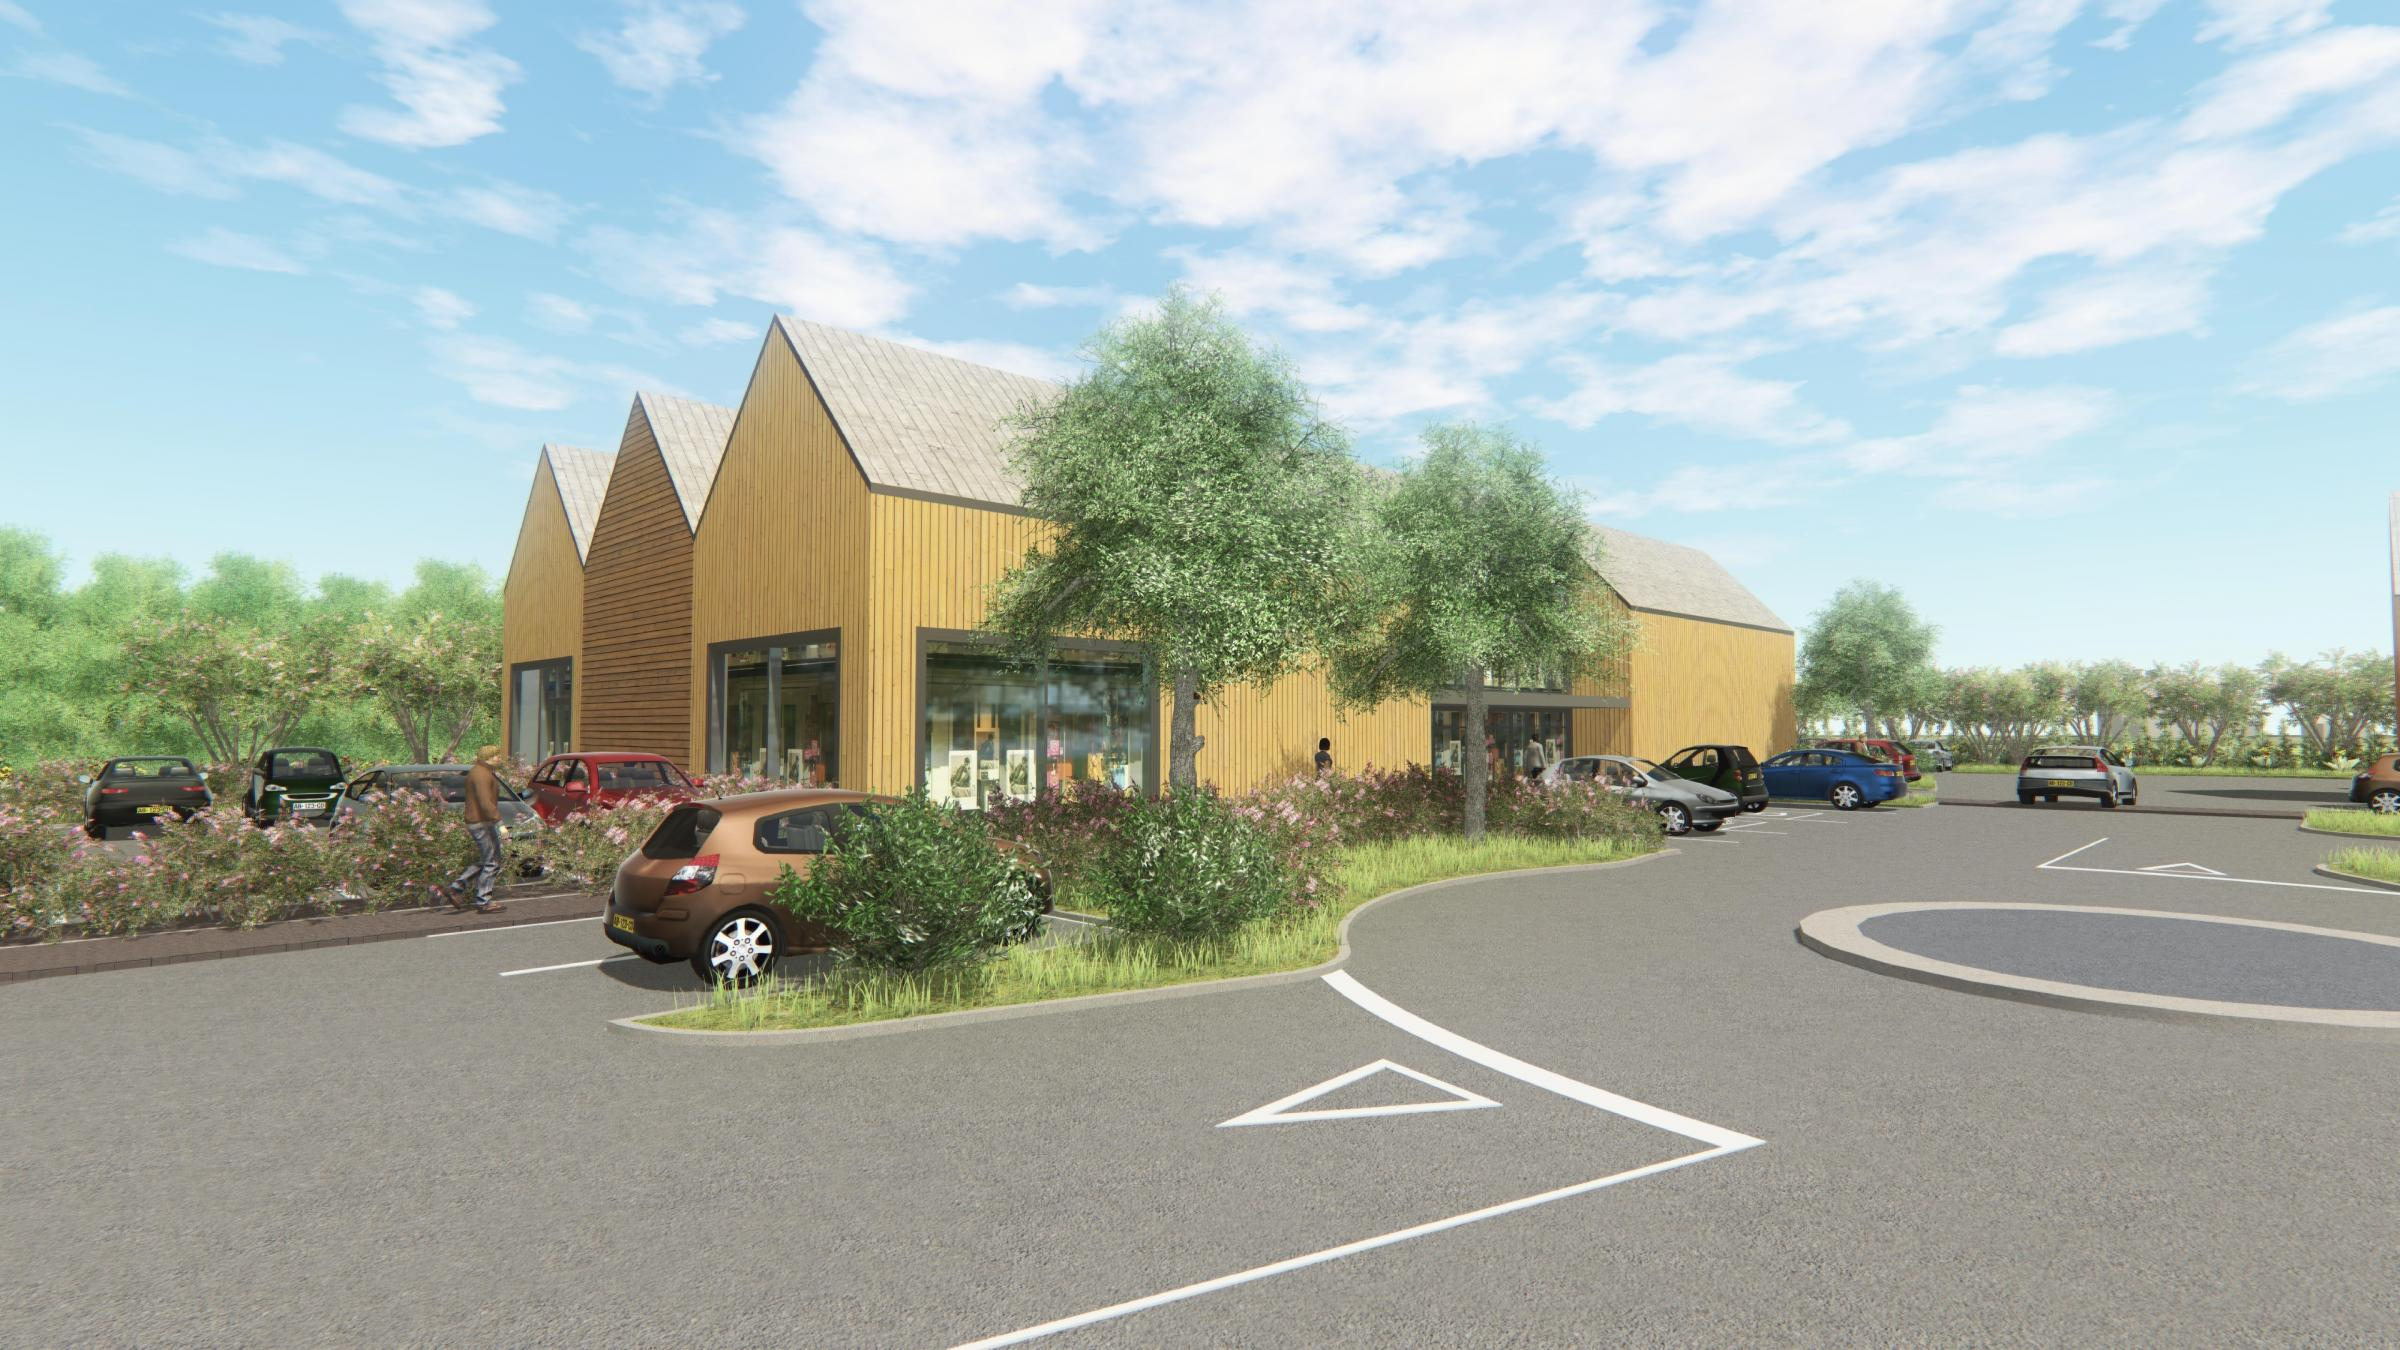 Monmouth plans for retail park and pub rejected unanimously